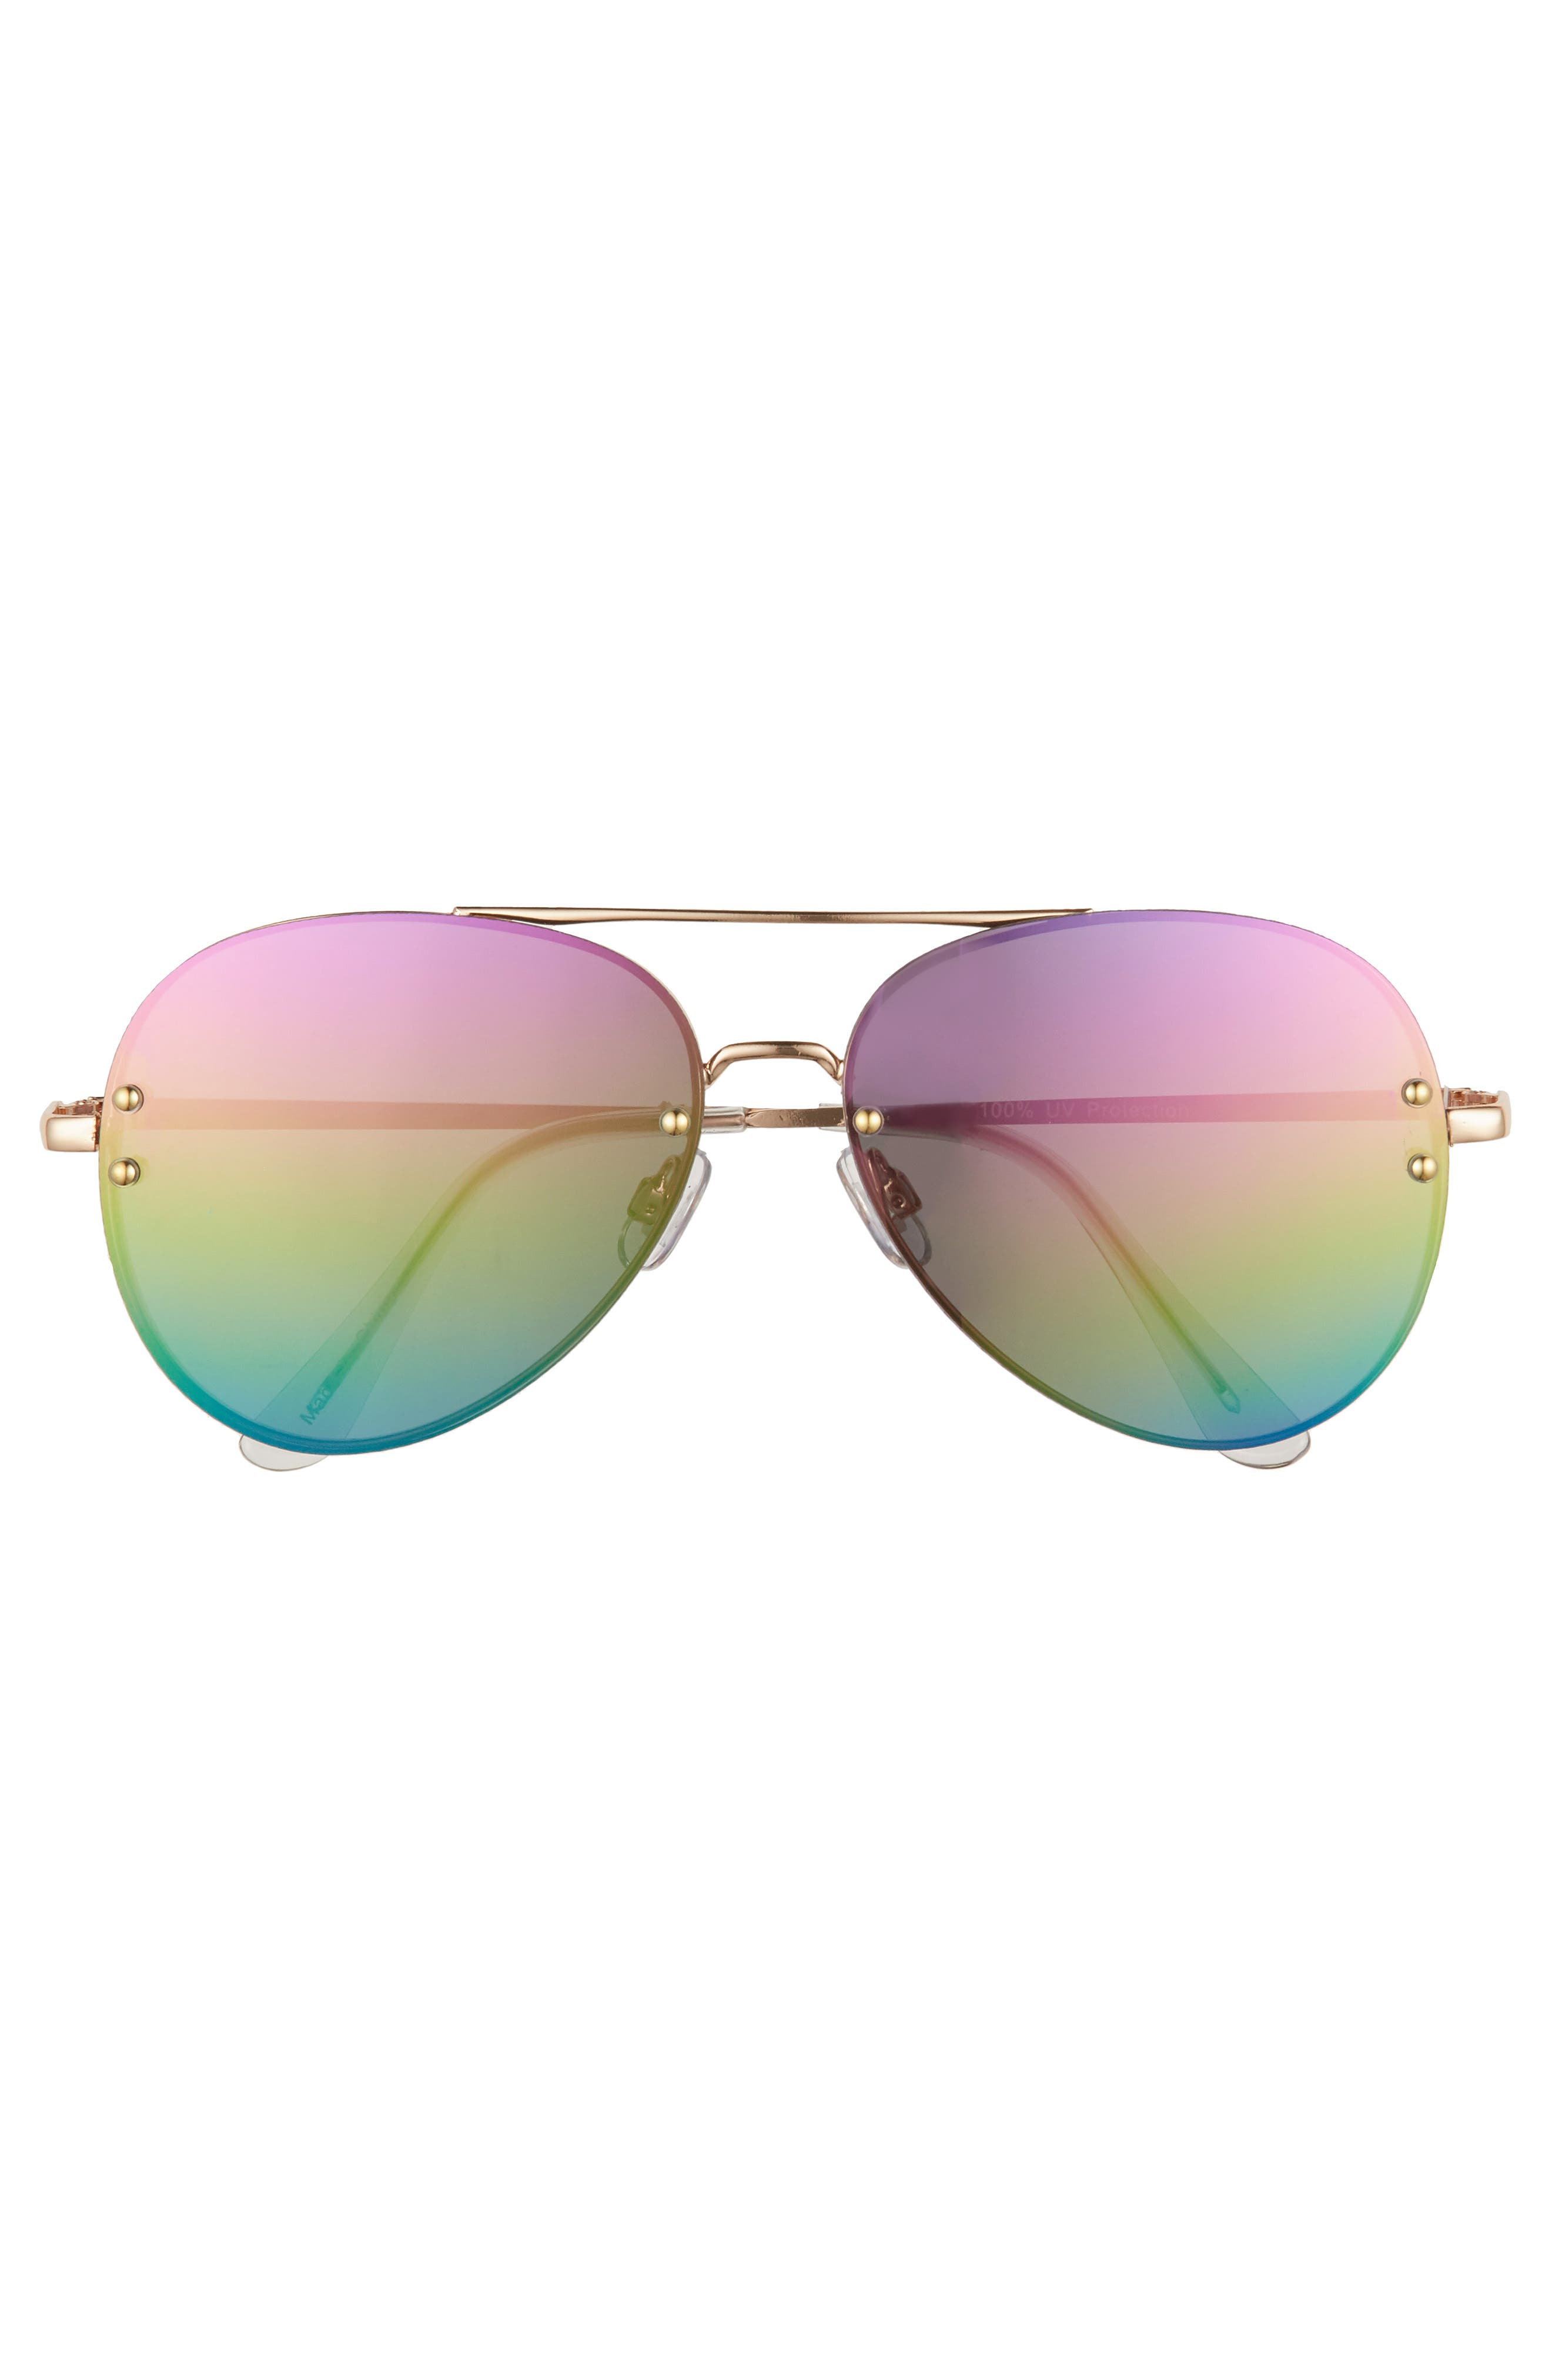 60mm Oversize Mirrored Aviator Sunglasses,                             Alternate thumbnail 3, color,                             Gold/Rainbow